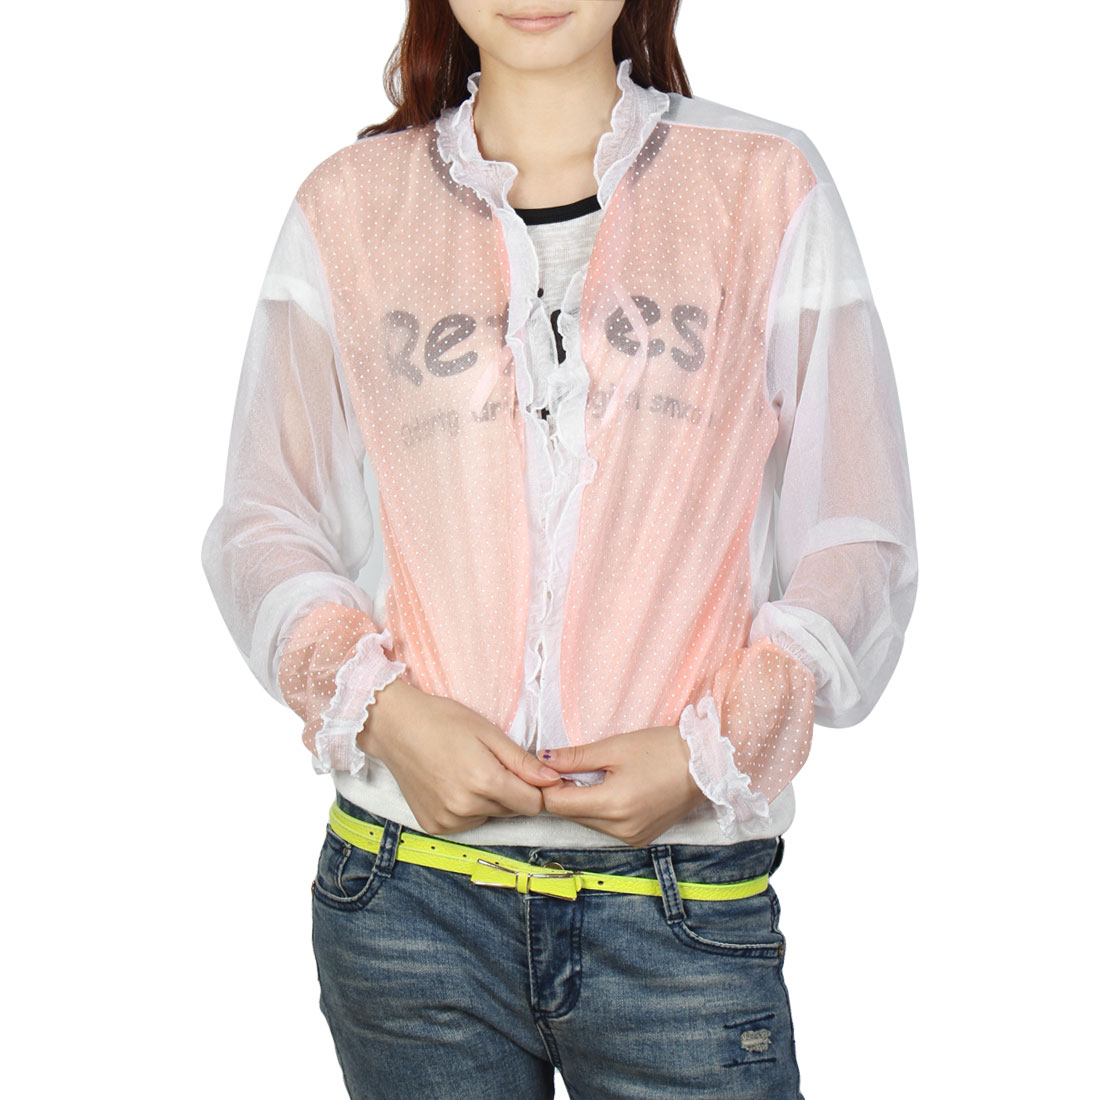 Self Tie Cropped Top Long Sleeves Dot Print UV Protection Shawl White Light Pink